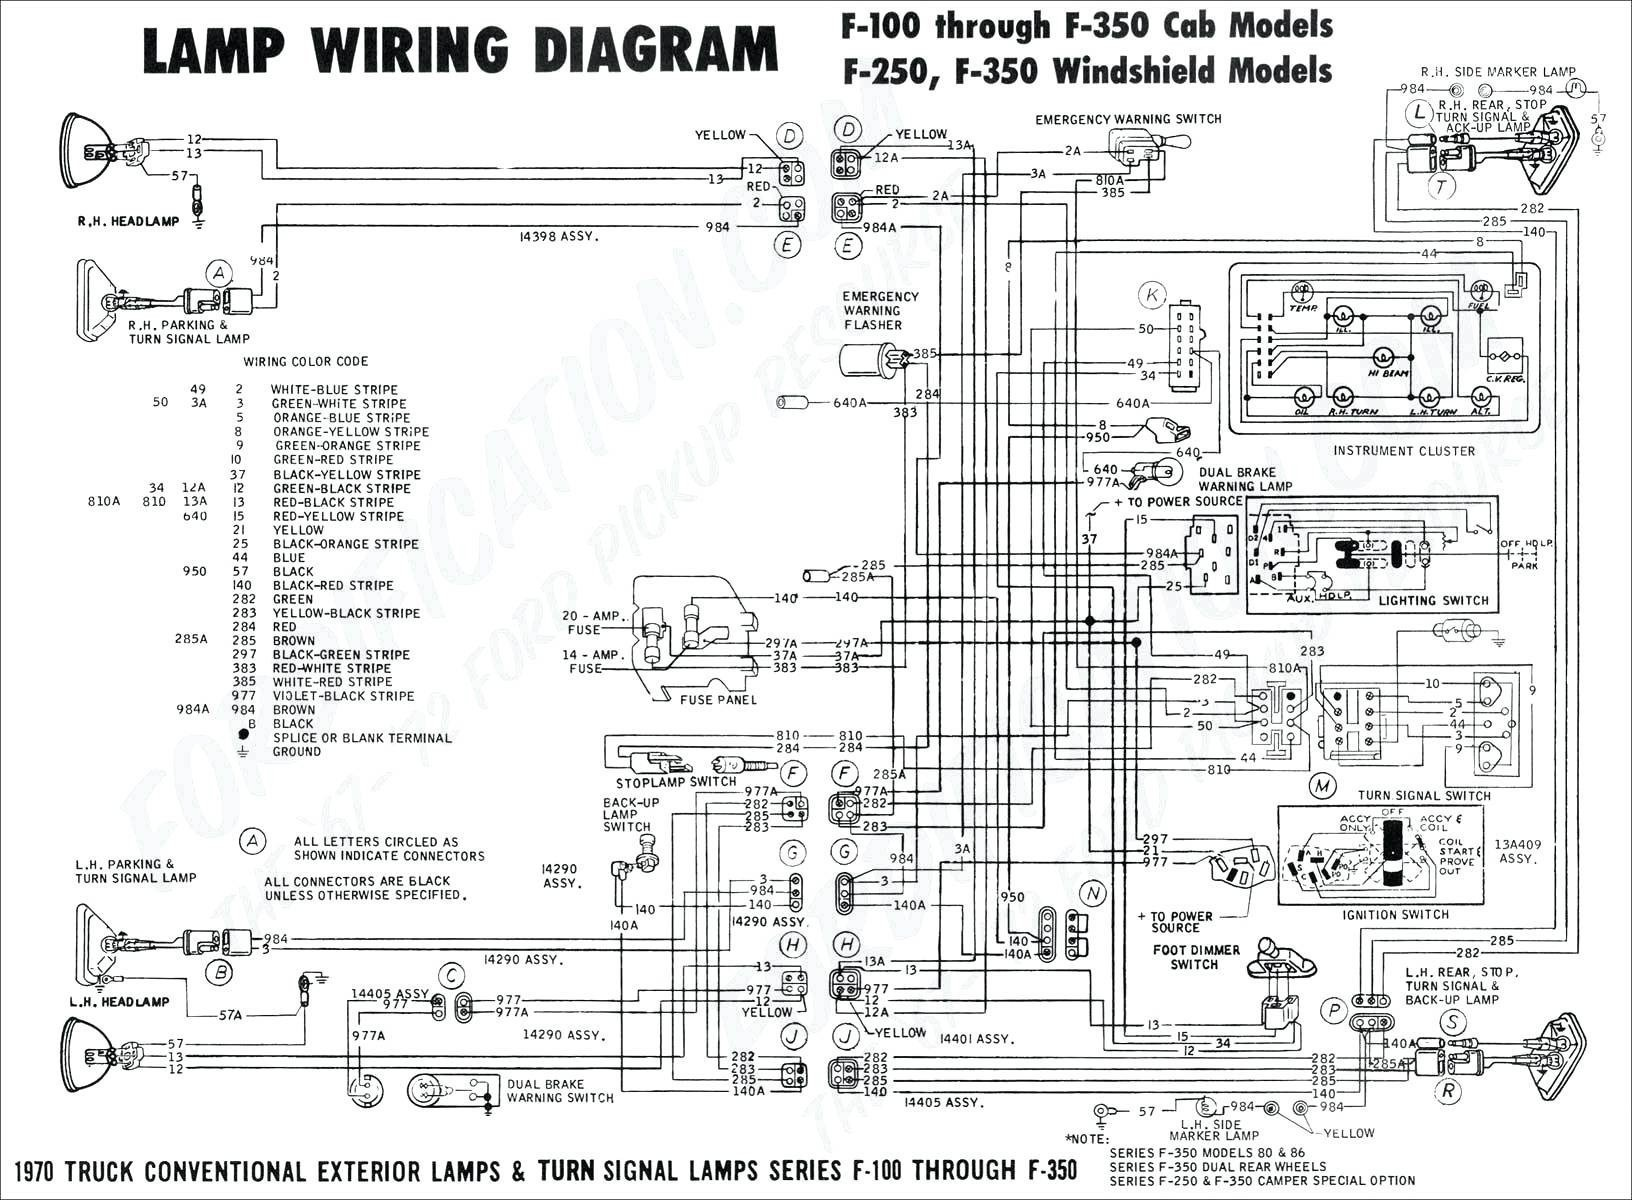 Toyota 4runner Engine Diagram 1997 4runner Fuse Diagram Wiring Diagram Datasource Of Toyota 4runner Engine Diagram 97 4runner Starter Wiring Diagram Schema Wiring Diagram